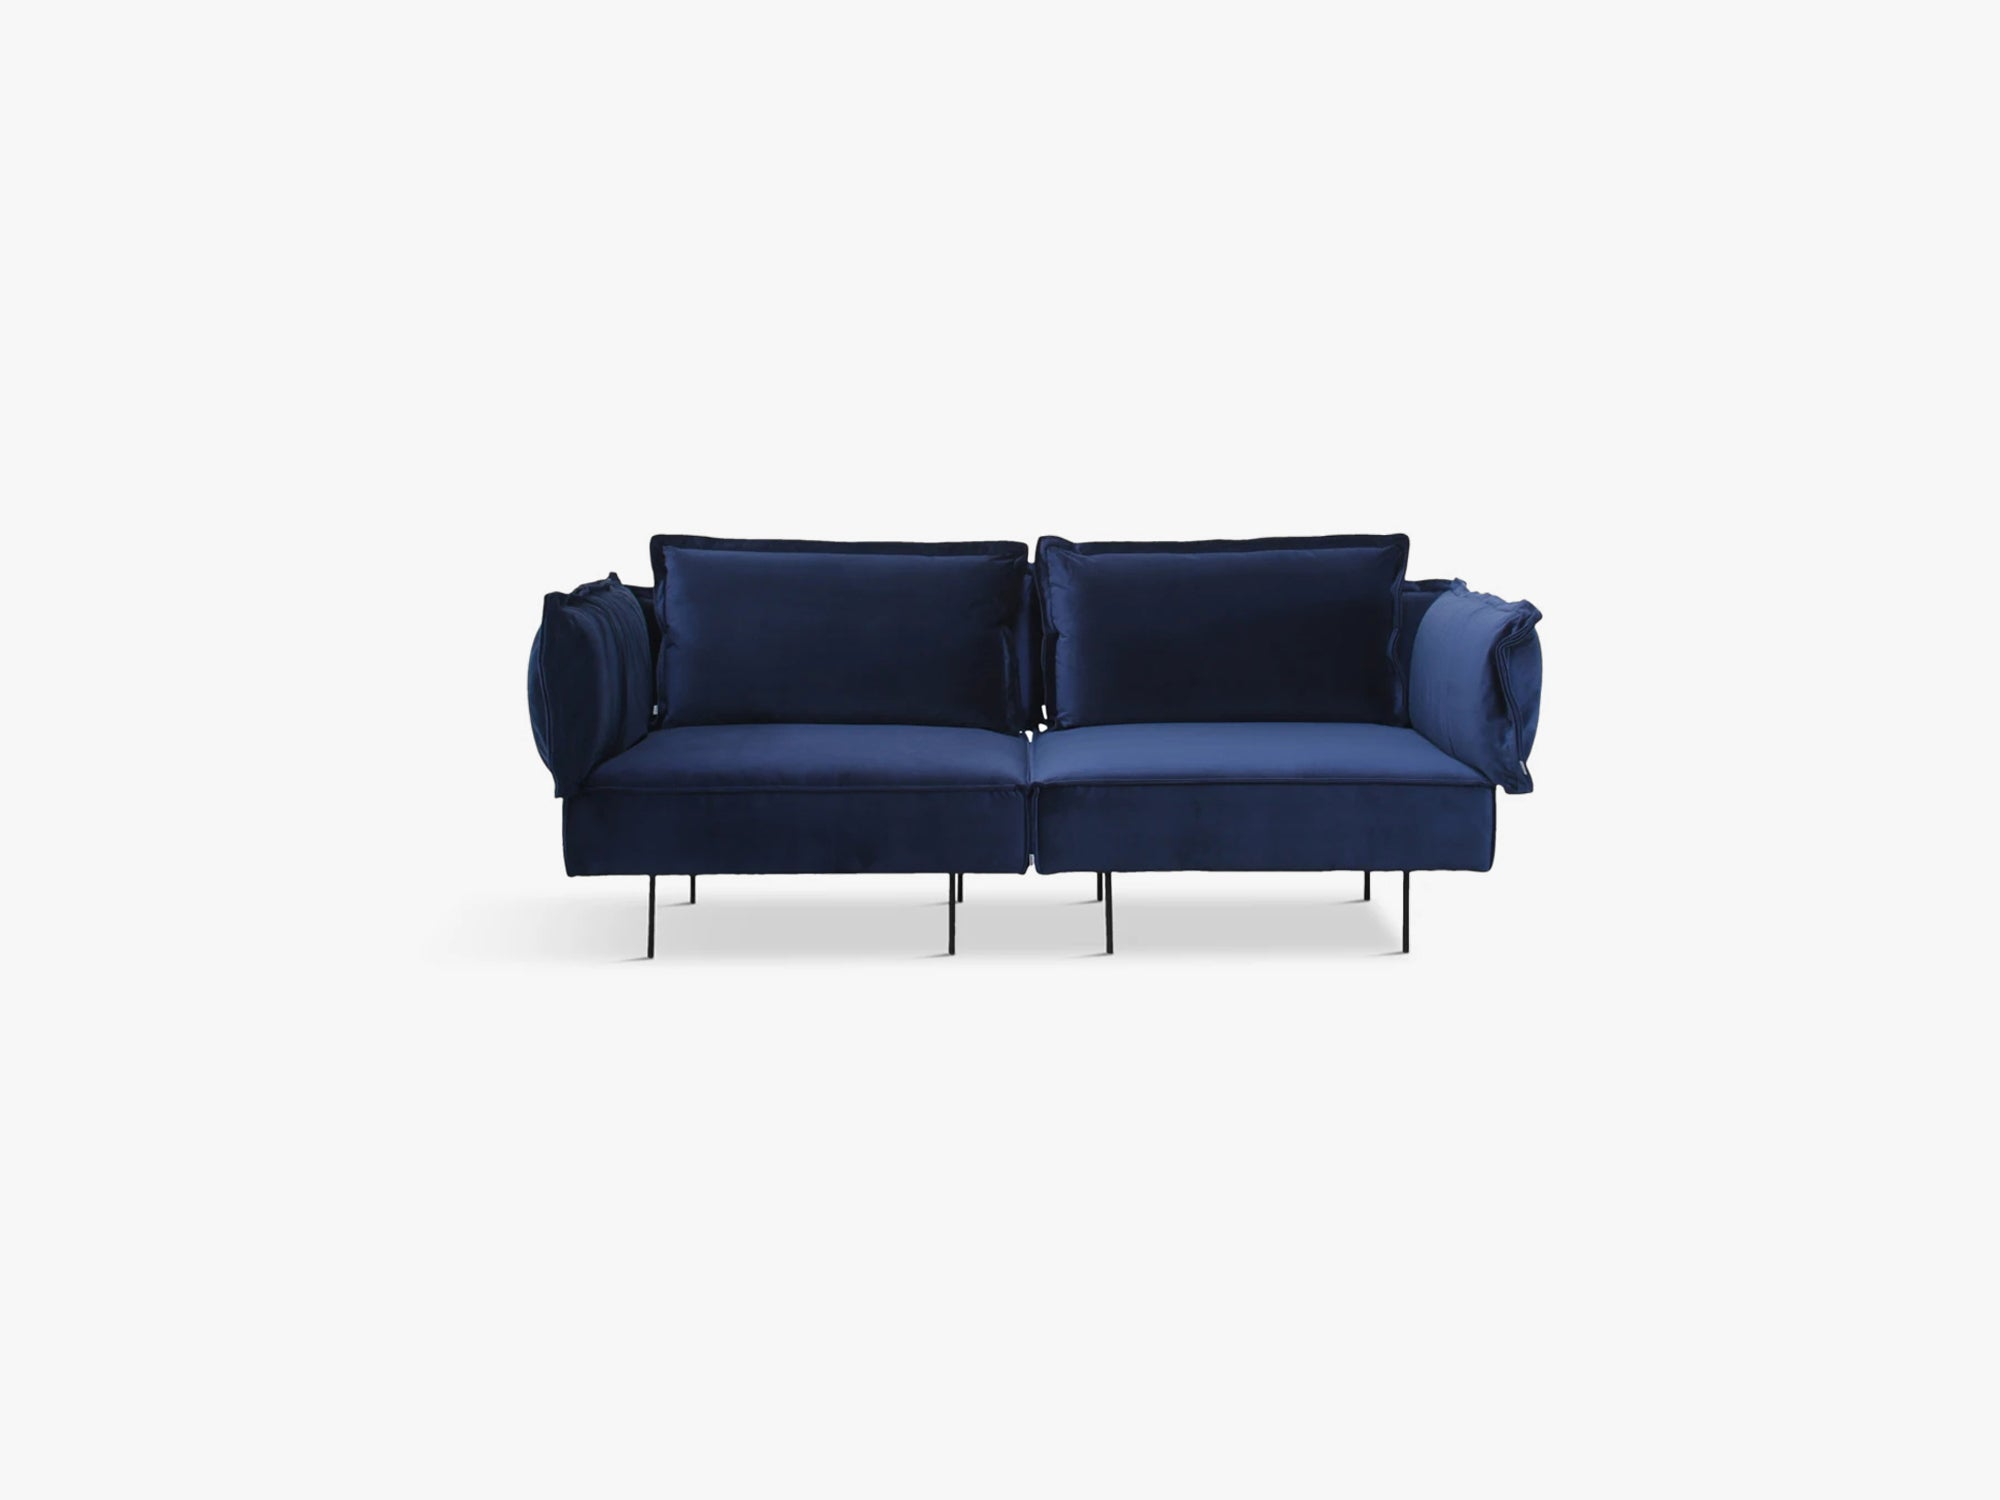 Modular Sofa, 2 Seater, Royal Blue fra Handvärk